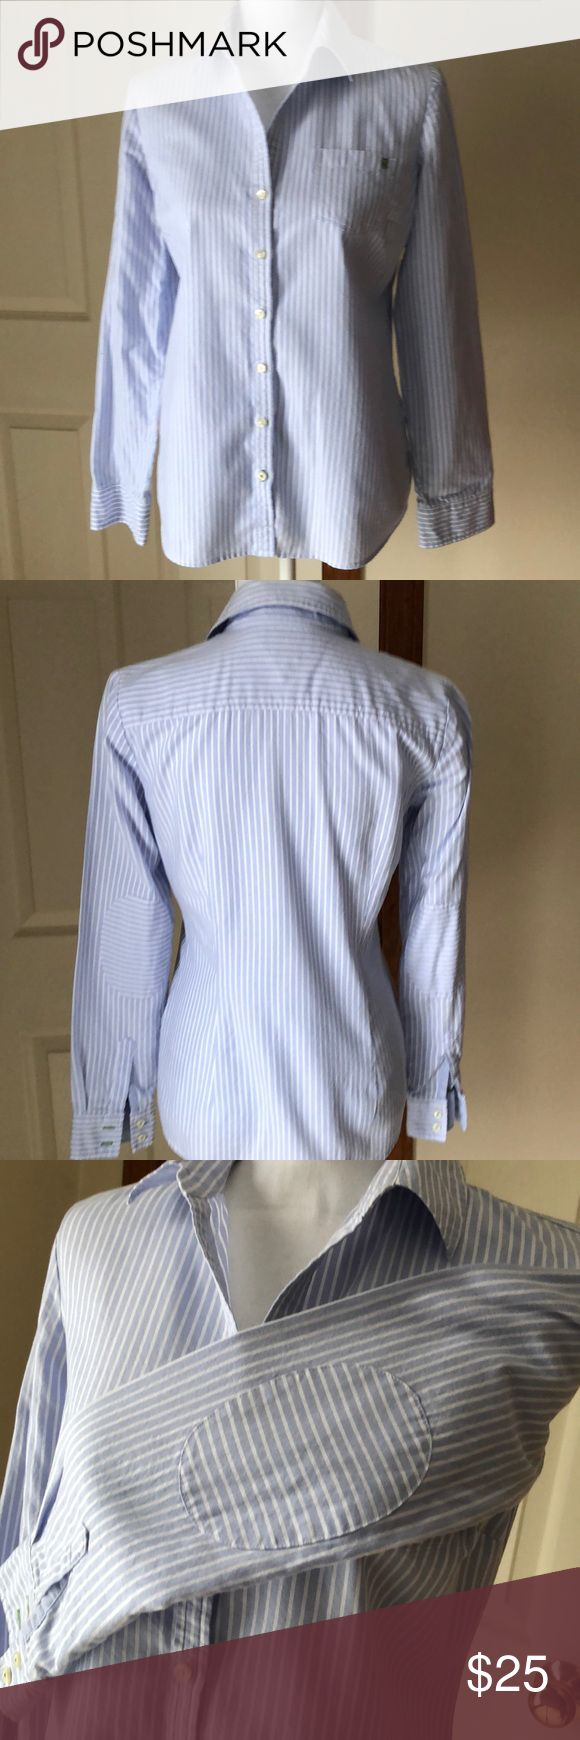 Tommy Hilfiger Oxford Shirt Tommy Hilfiger Women's Oxford shirt in size SP with stripes of light blue and white. In great pre-owned condition. Tommy Hilfiger Tops Button Down Shirts